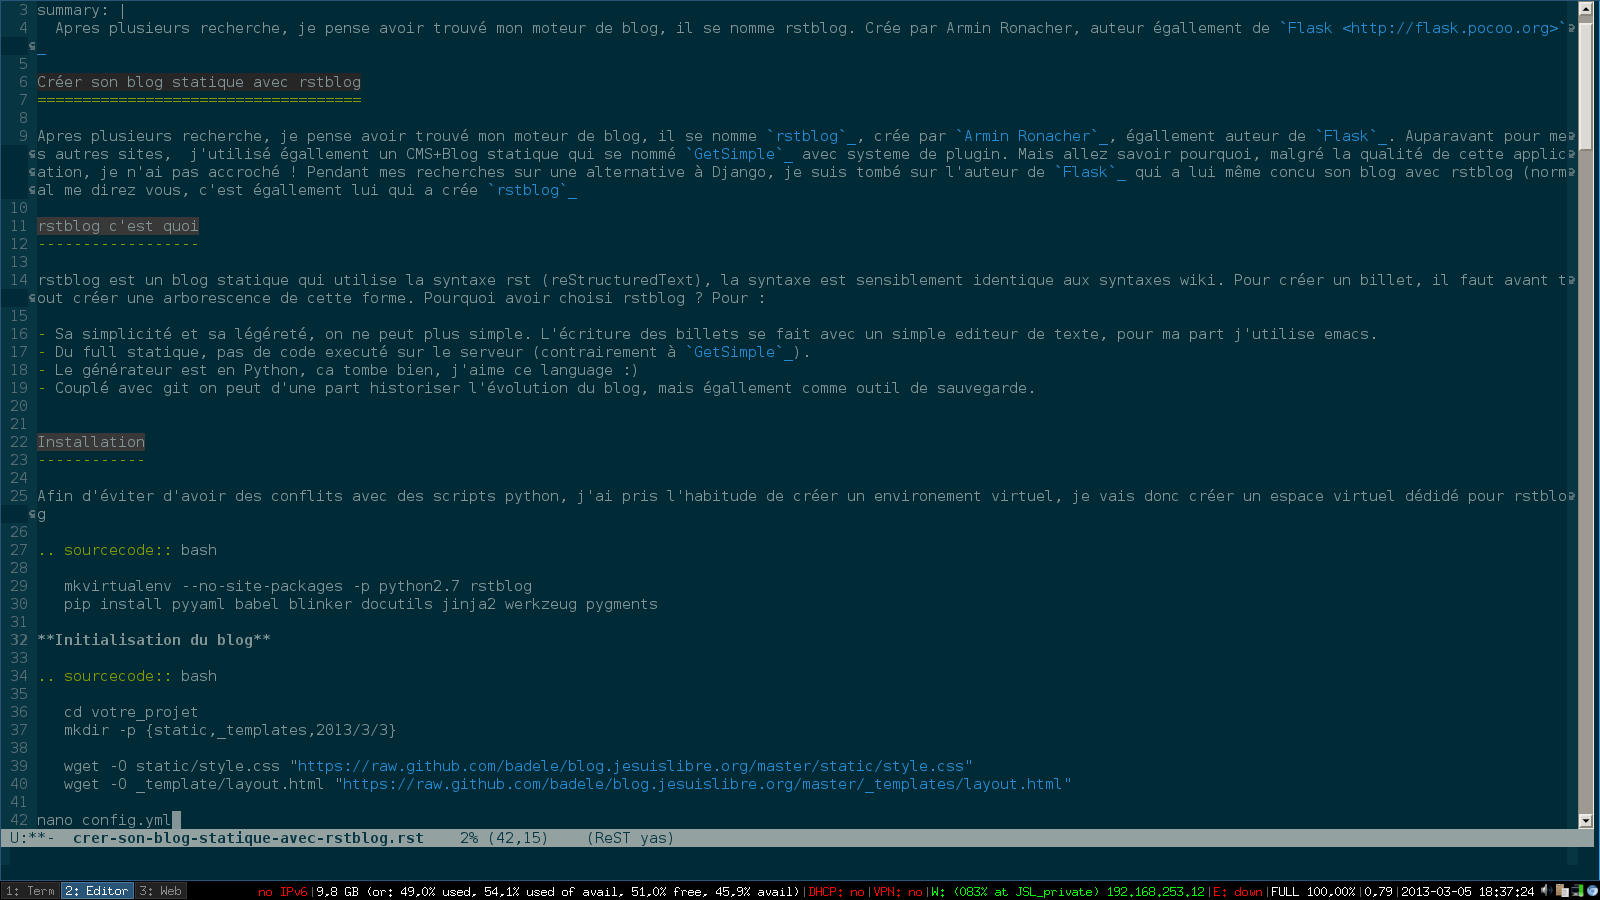 rstmode for emacs